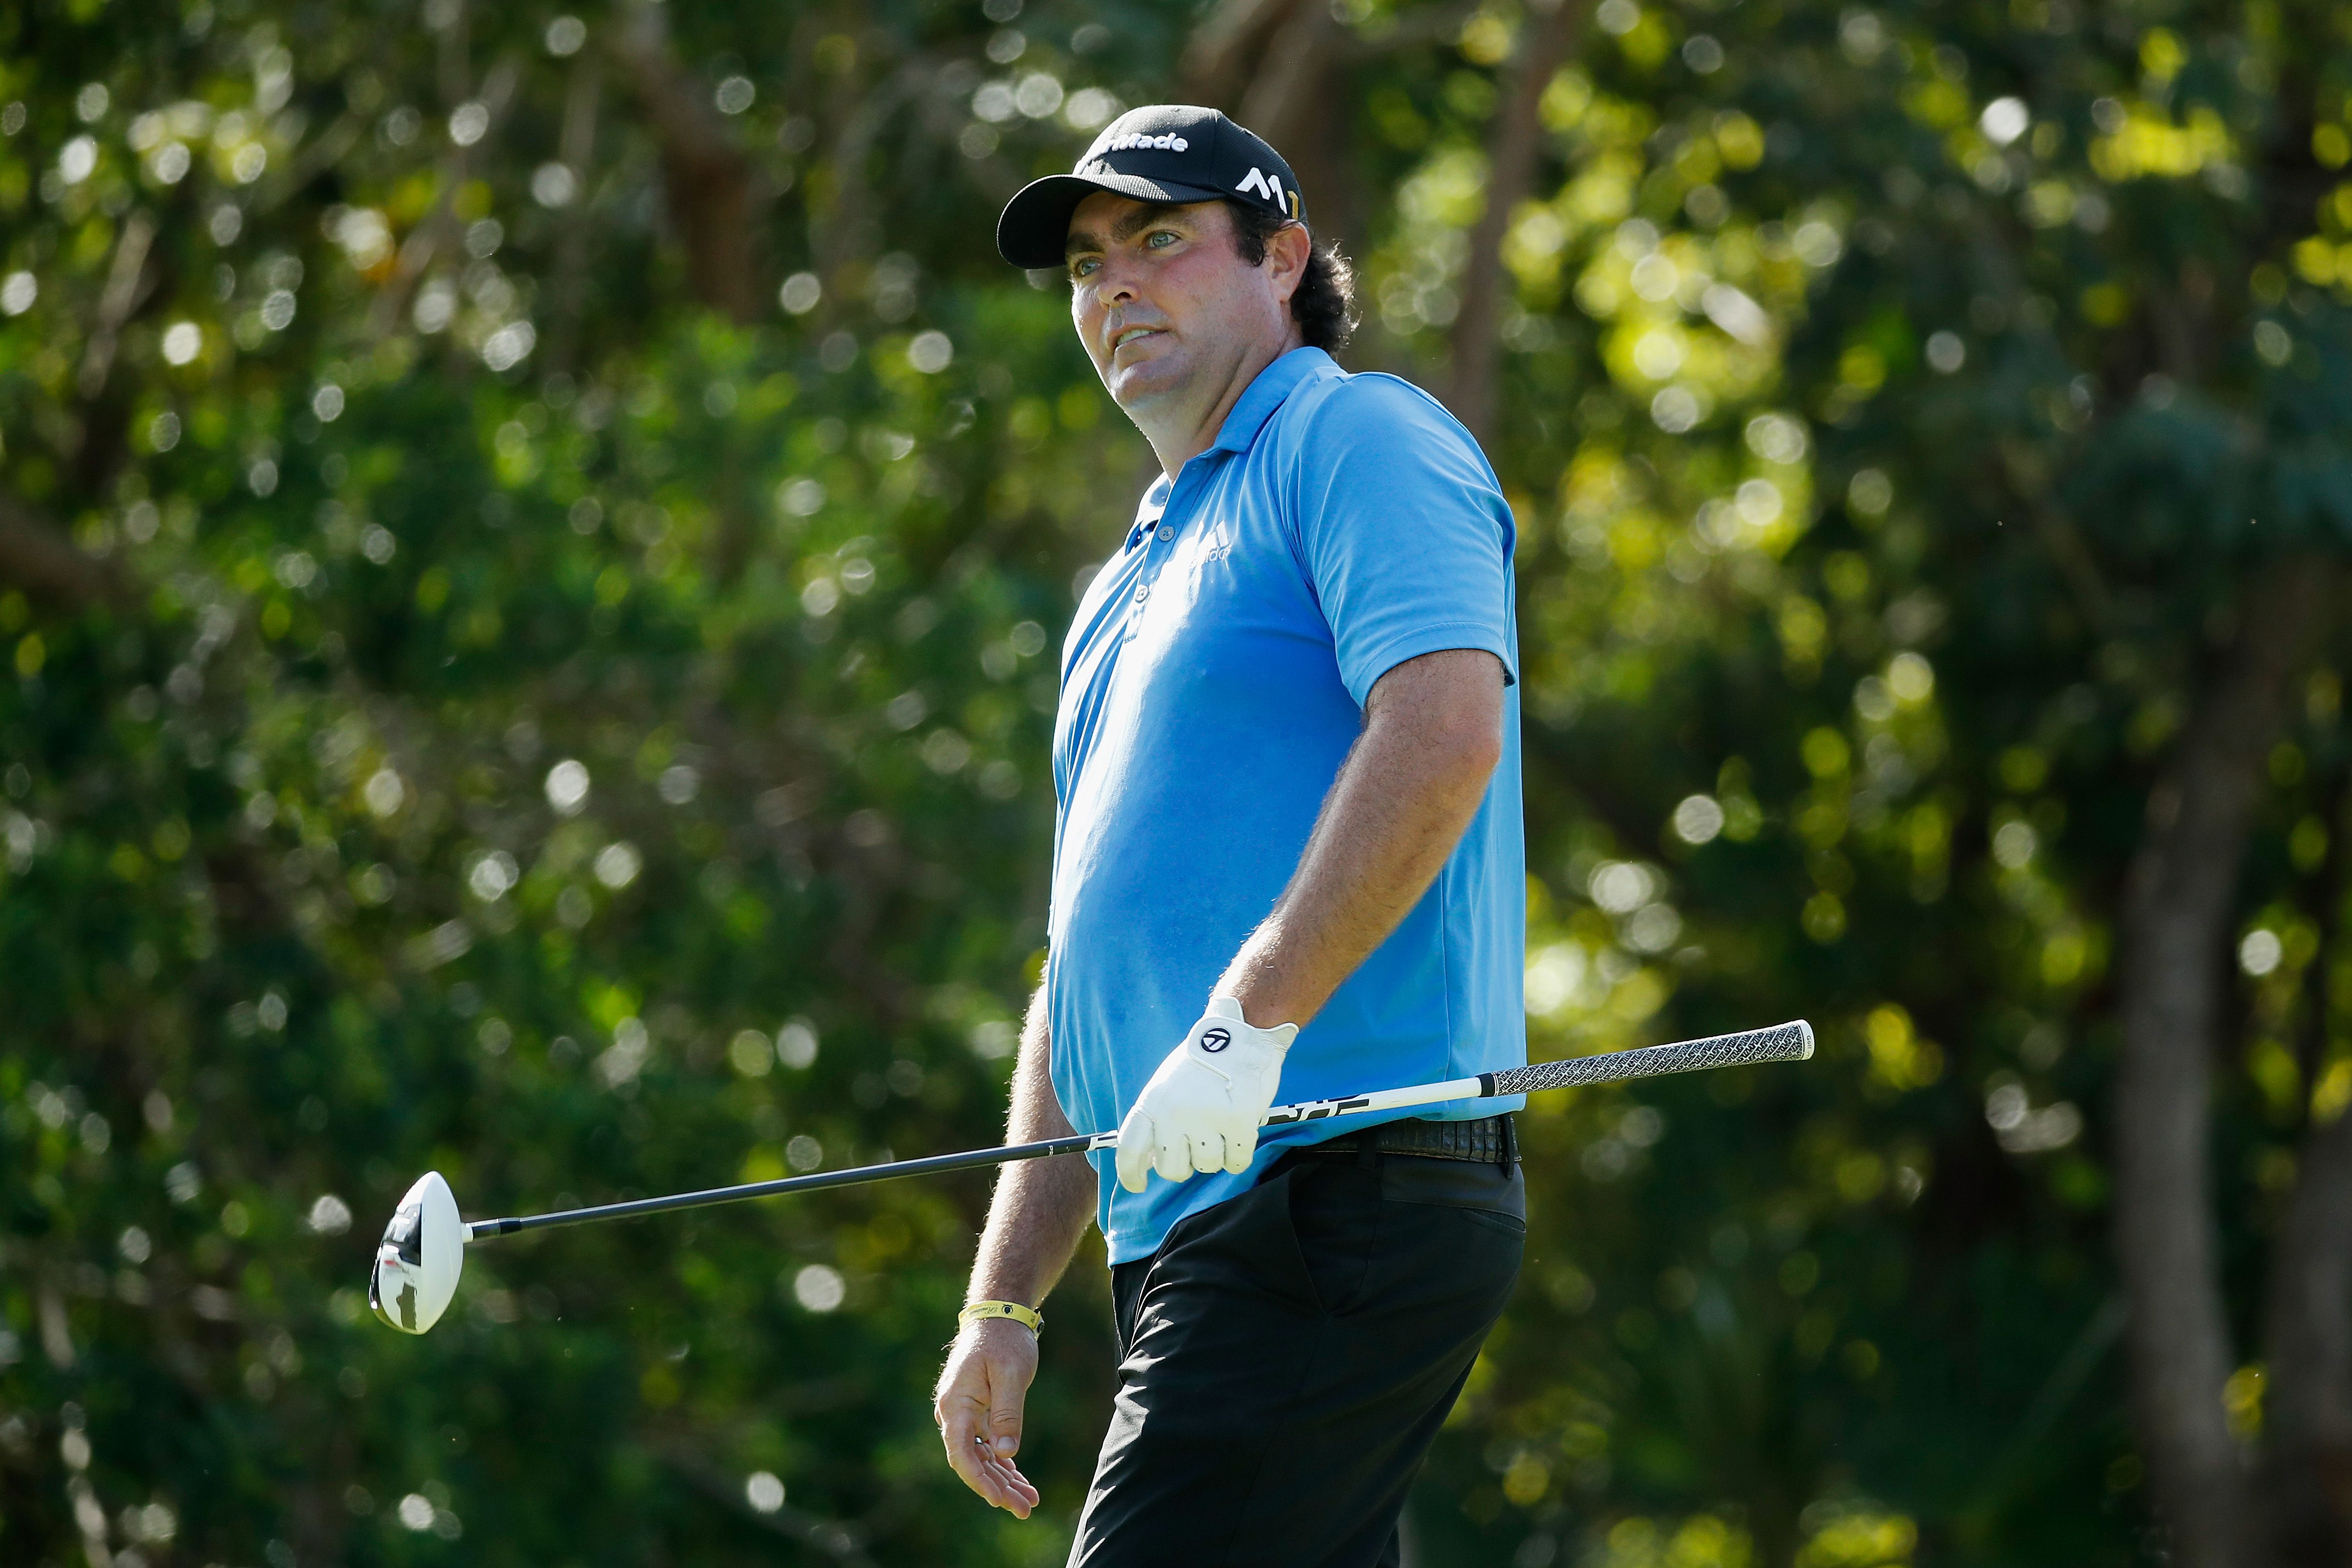 Golfer Steven Bowditch at the 2016 OHL Classic at Mayakoba